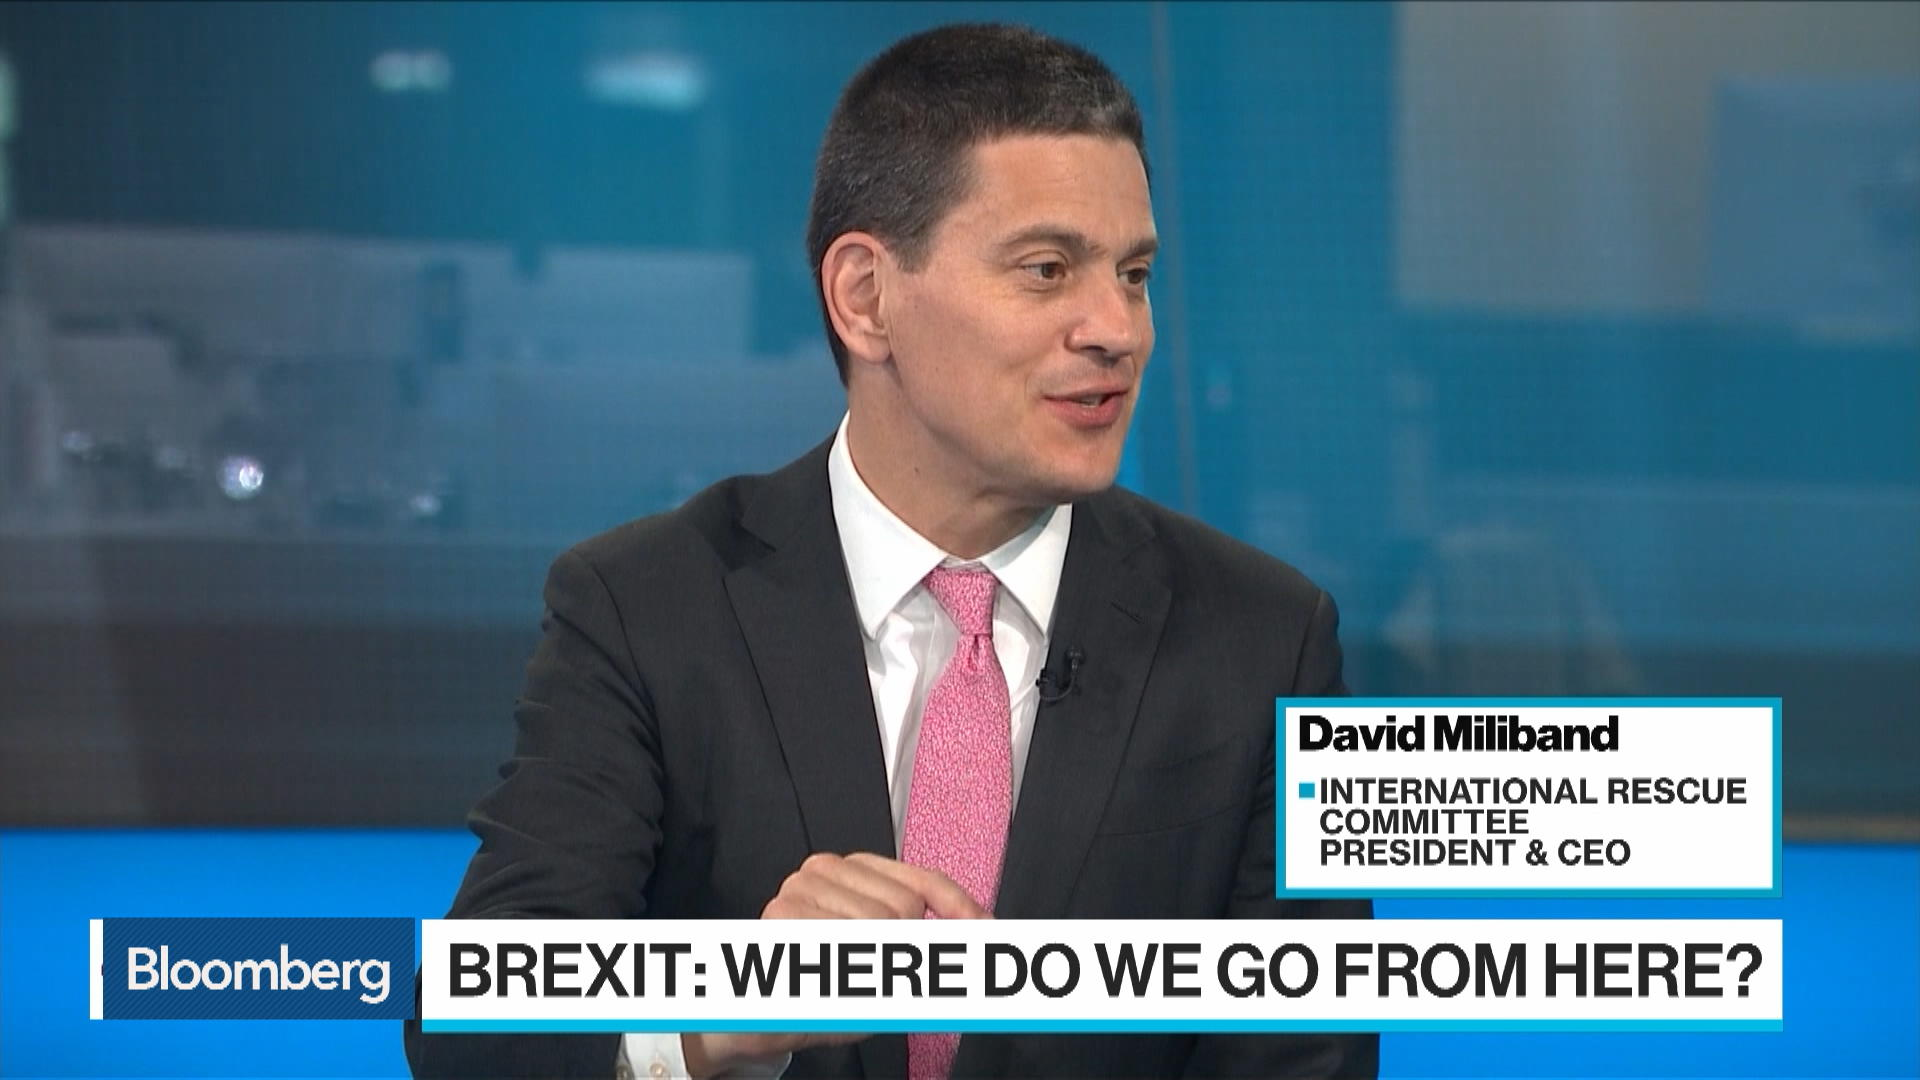 New Tory Leader Must Be Honest With Electorate, Says David Miliband